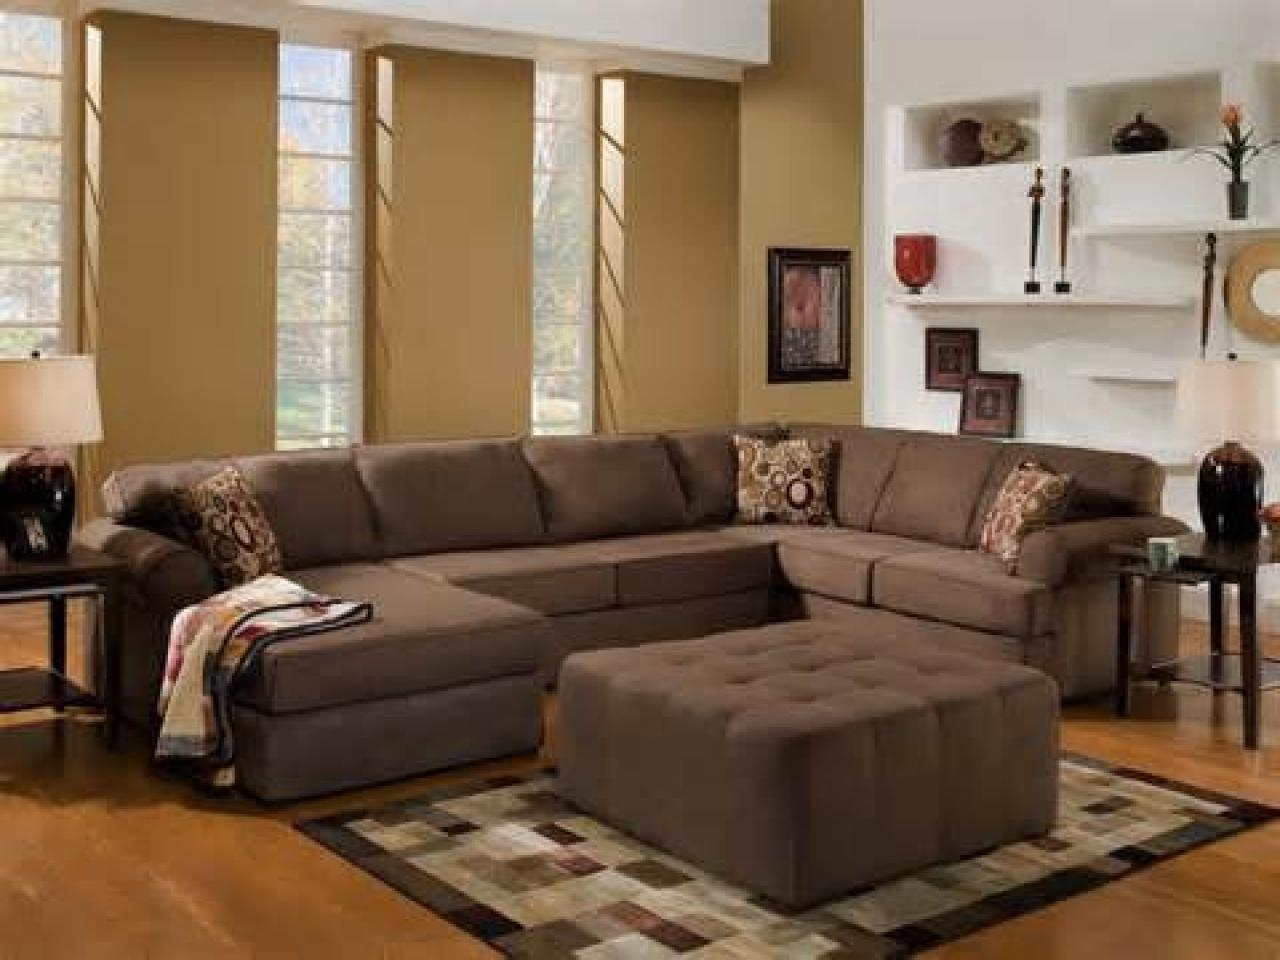 Sofas Center : Sofas On Sale Or Clearance Big Lotsbig Lots With Regard To Big Lots Sofas (Image 17 of 20)